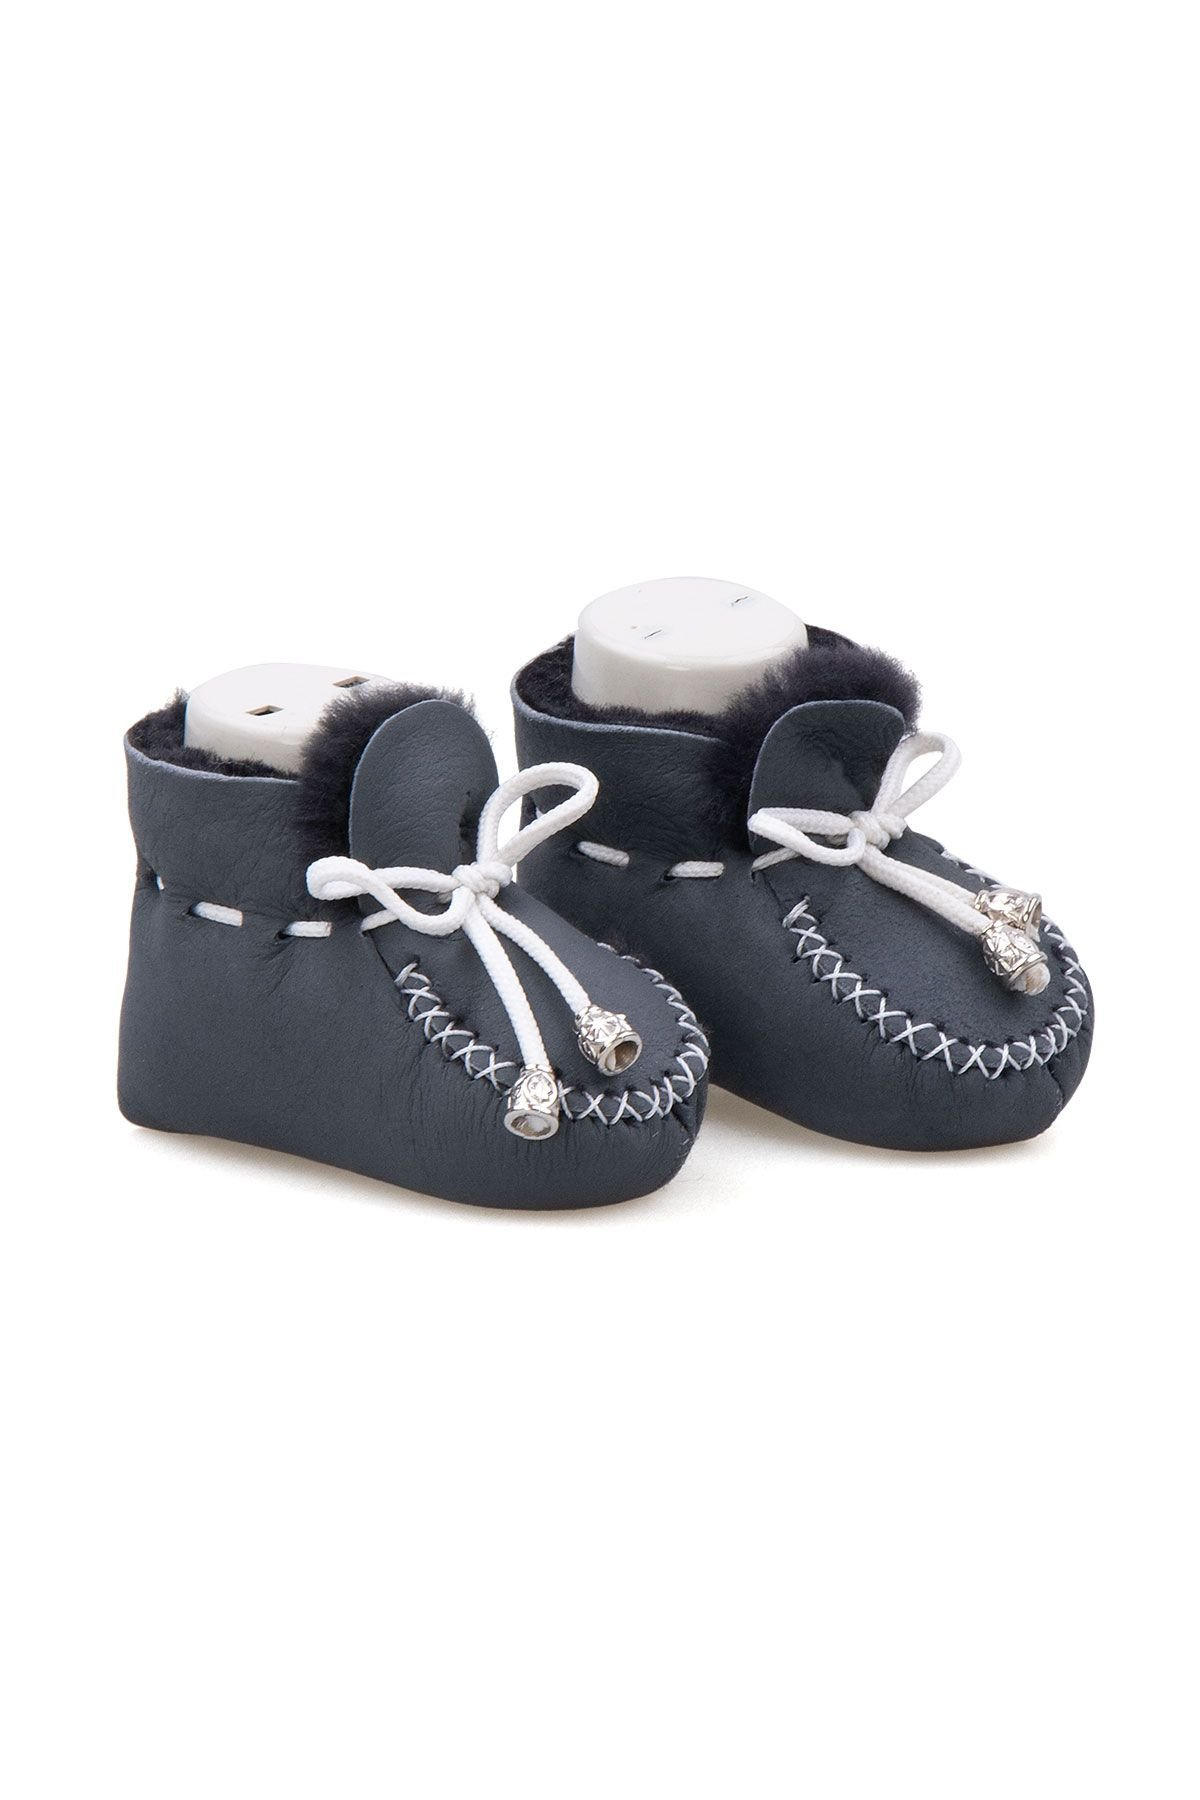 Pegia Shearling Baby's Booties 141115 Anthracite-colored